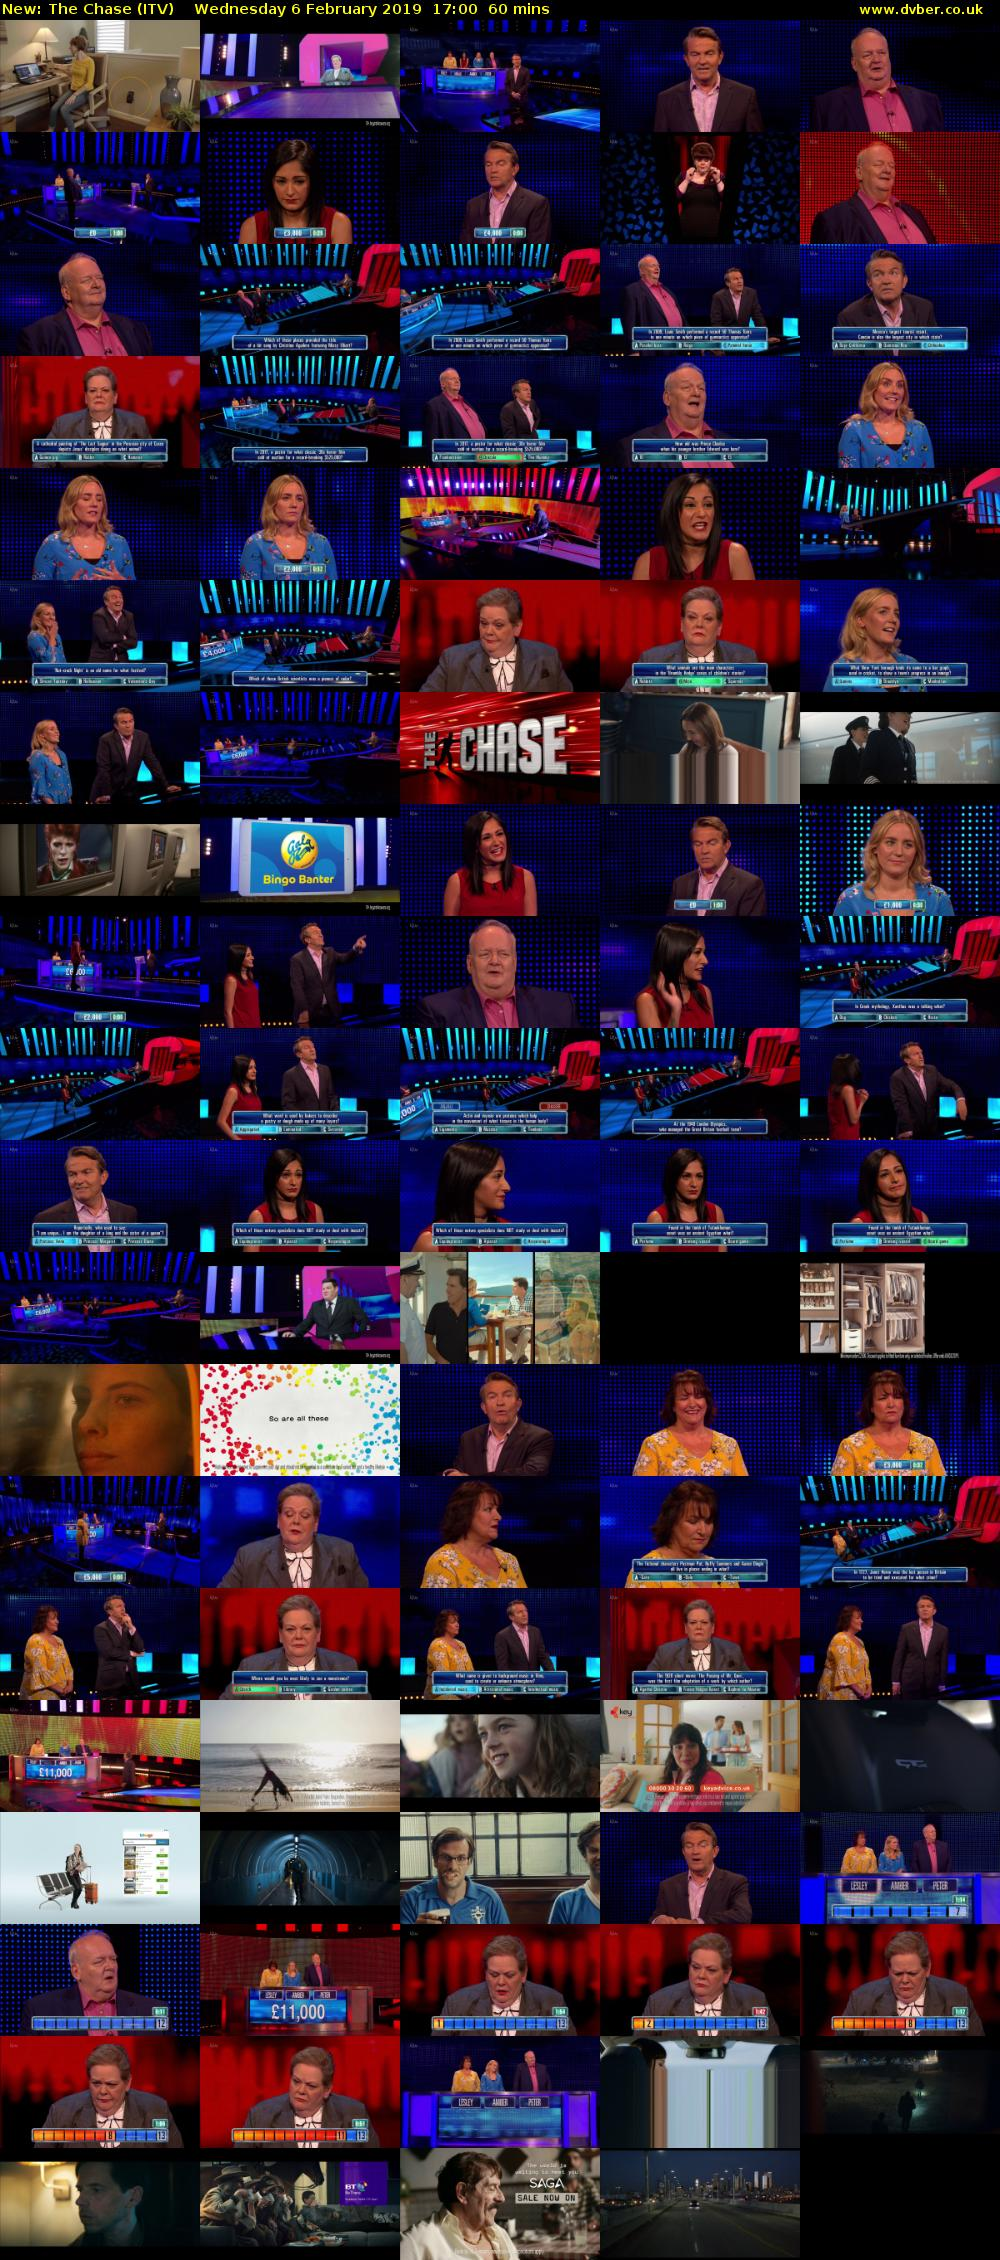 Wednesday 6 February 2019 The Chase Itv Hd 2019 02 06 1700